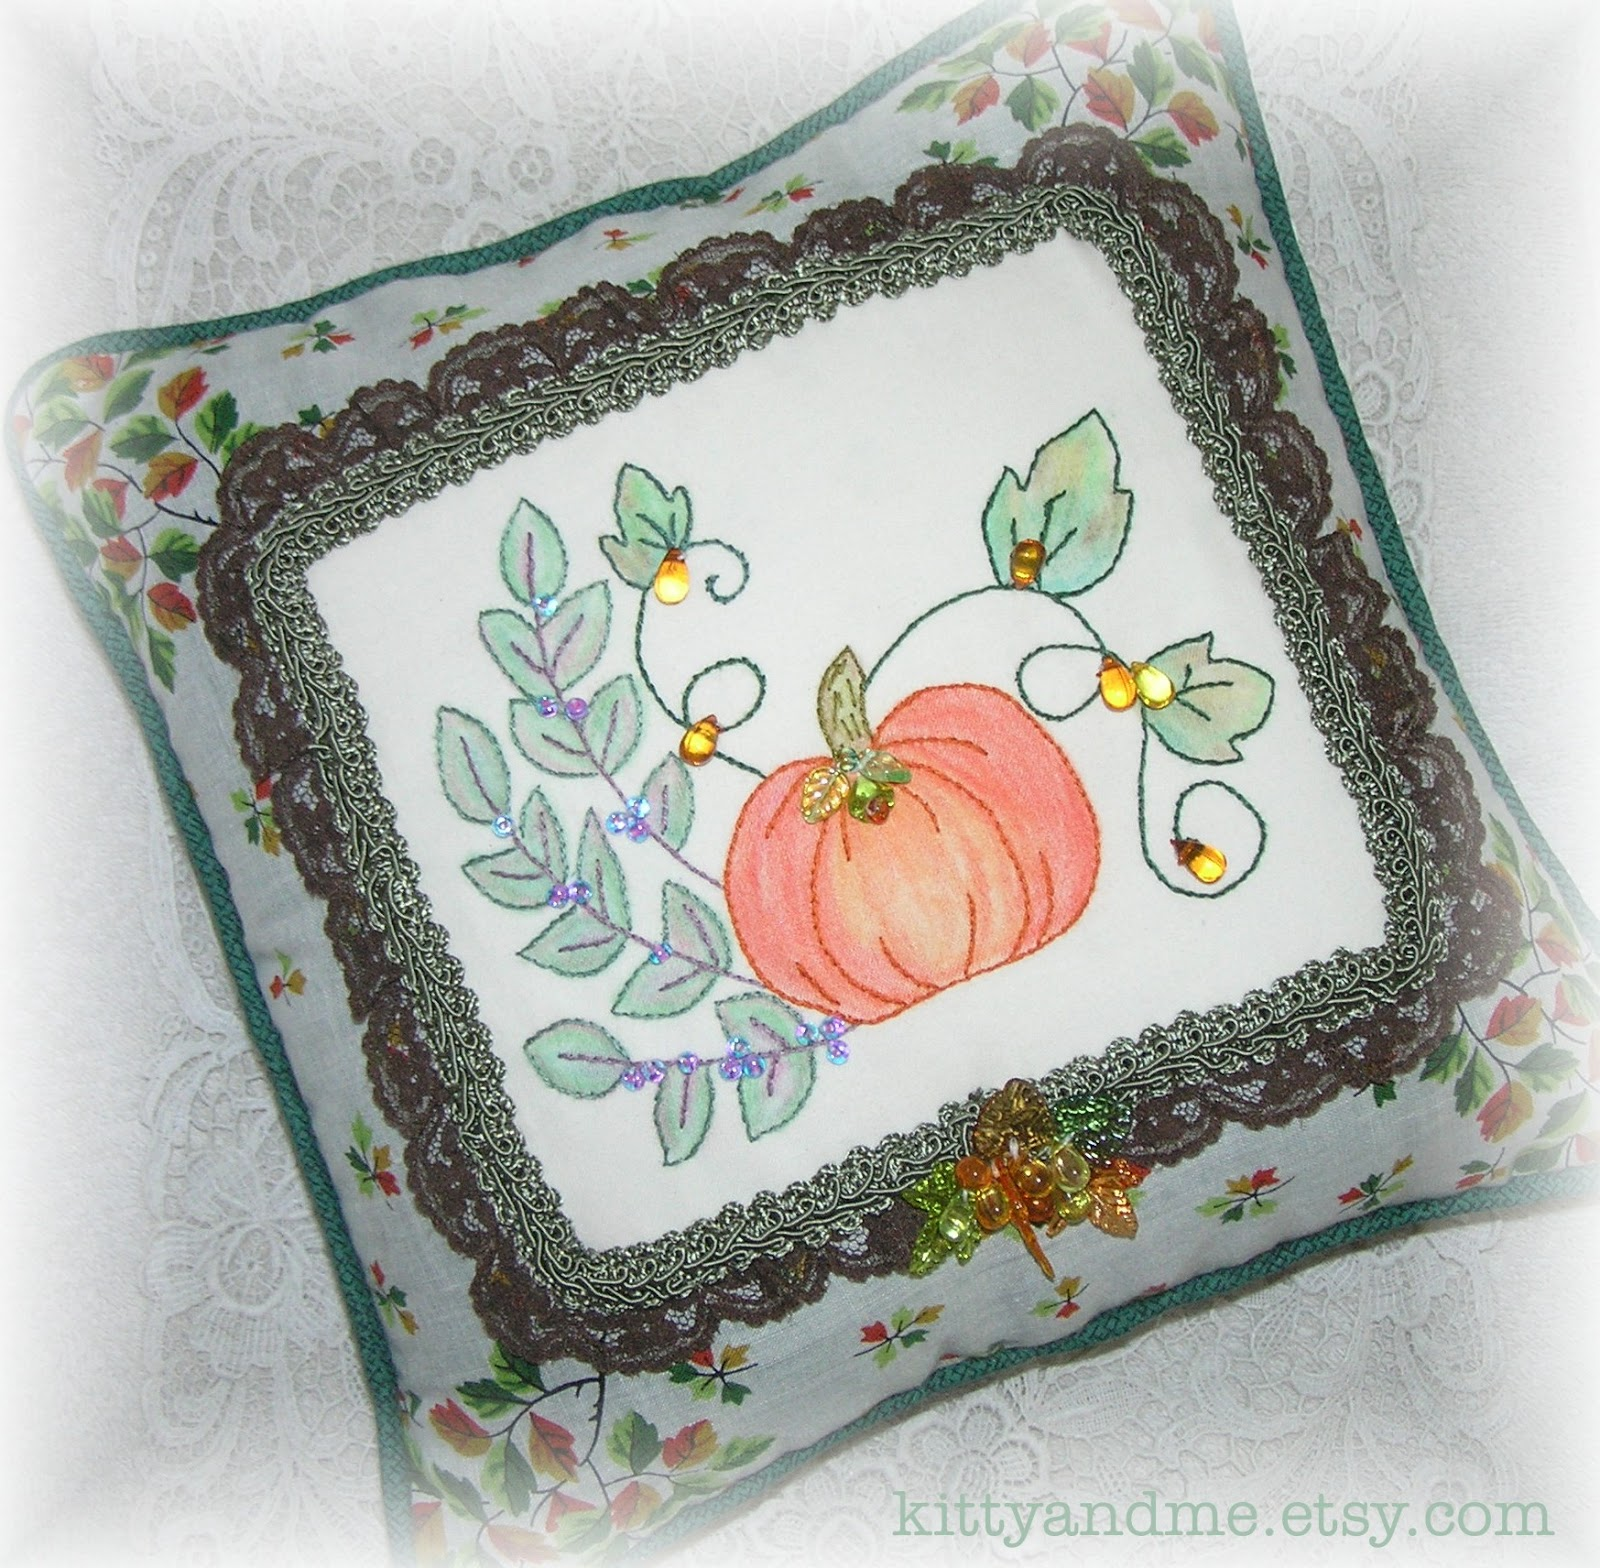 Kitty And Me Designs: Decorative Embroidered Pillows for Fall and Halloween